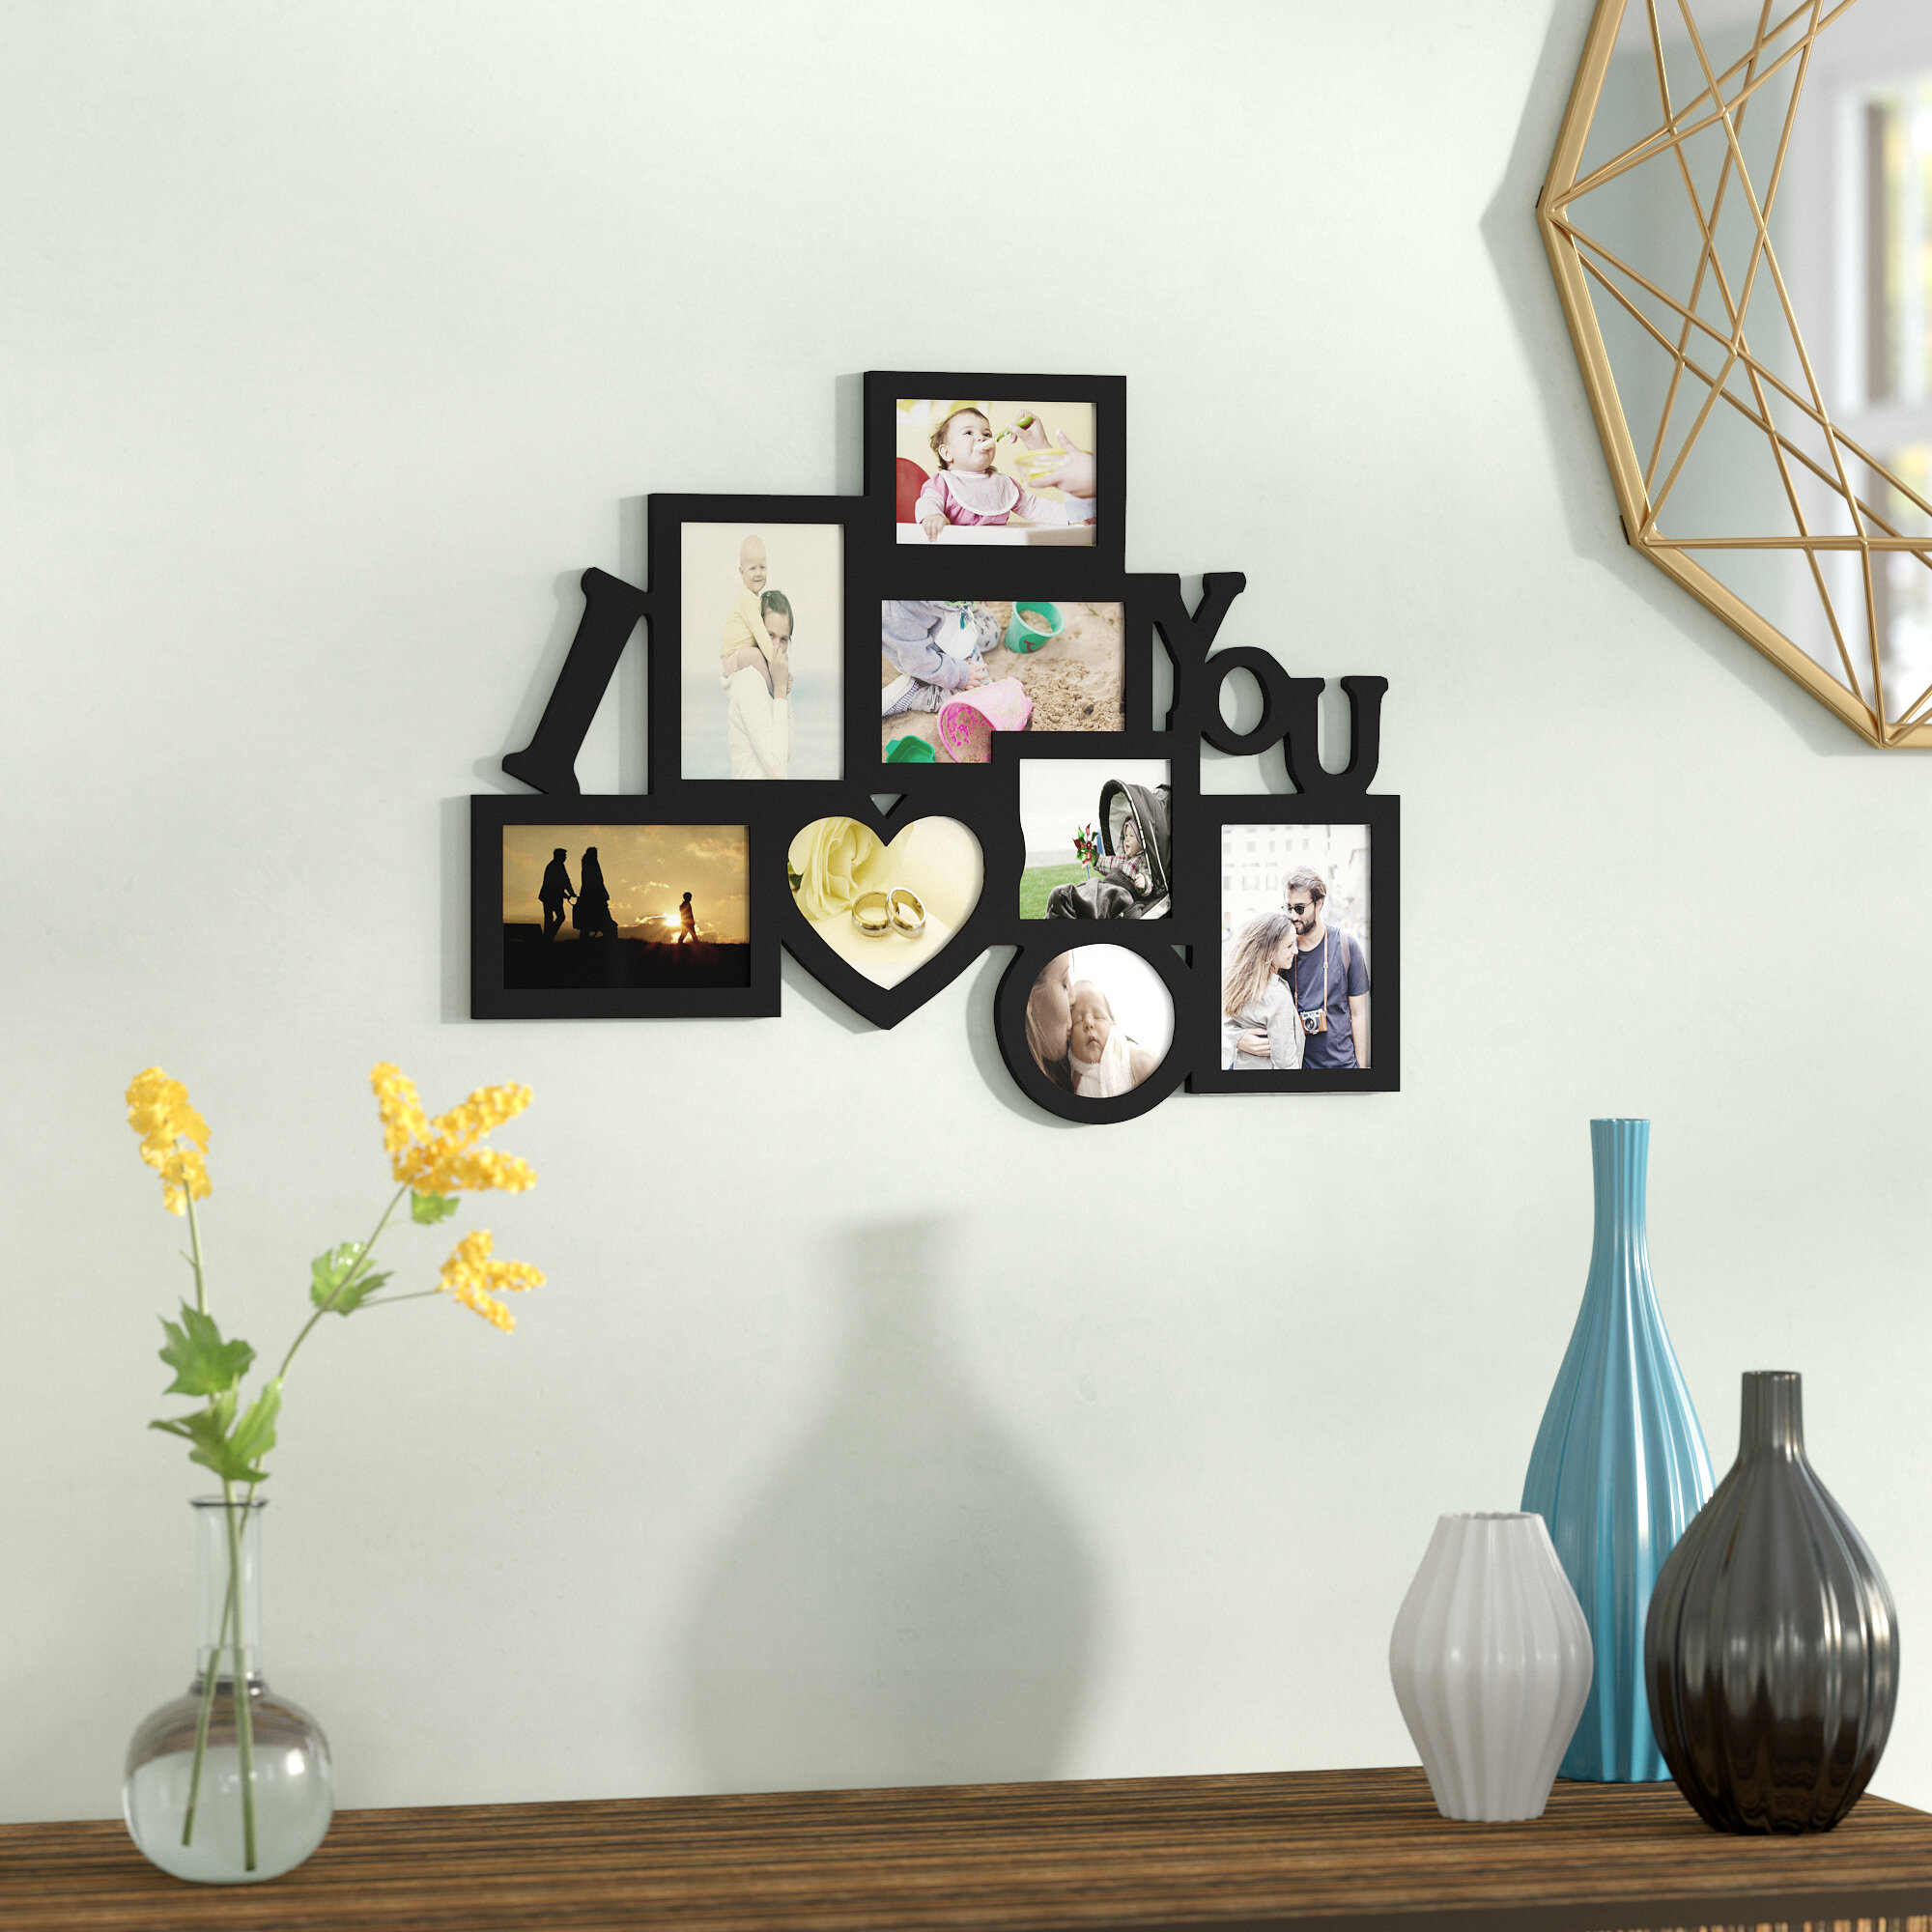 Ebern Designs Clintonpark 8 Opening Wooden Photo Collage Wall Hanging Picture Frame Reviews Wayfair